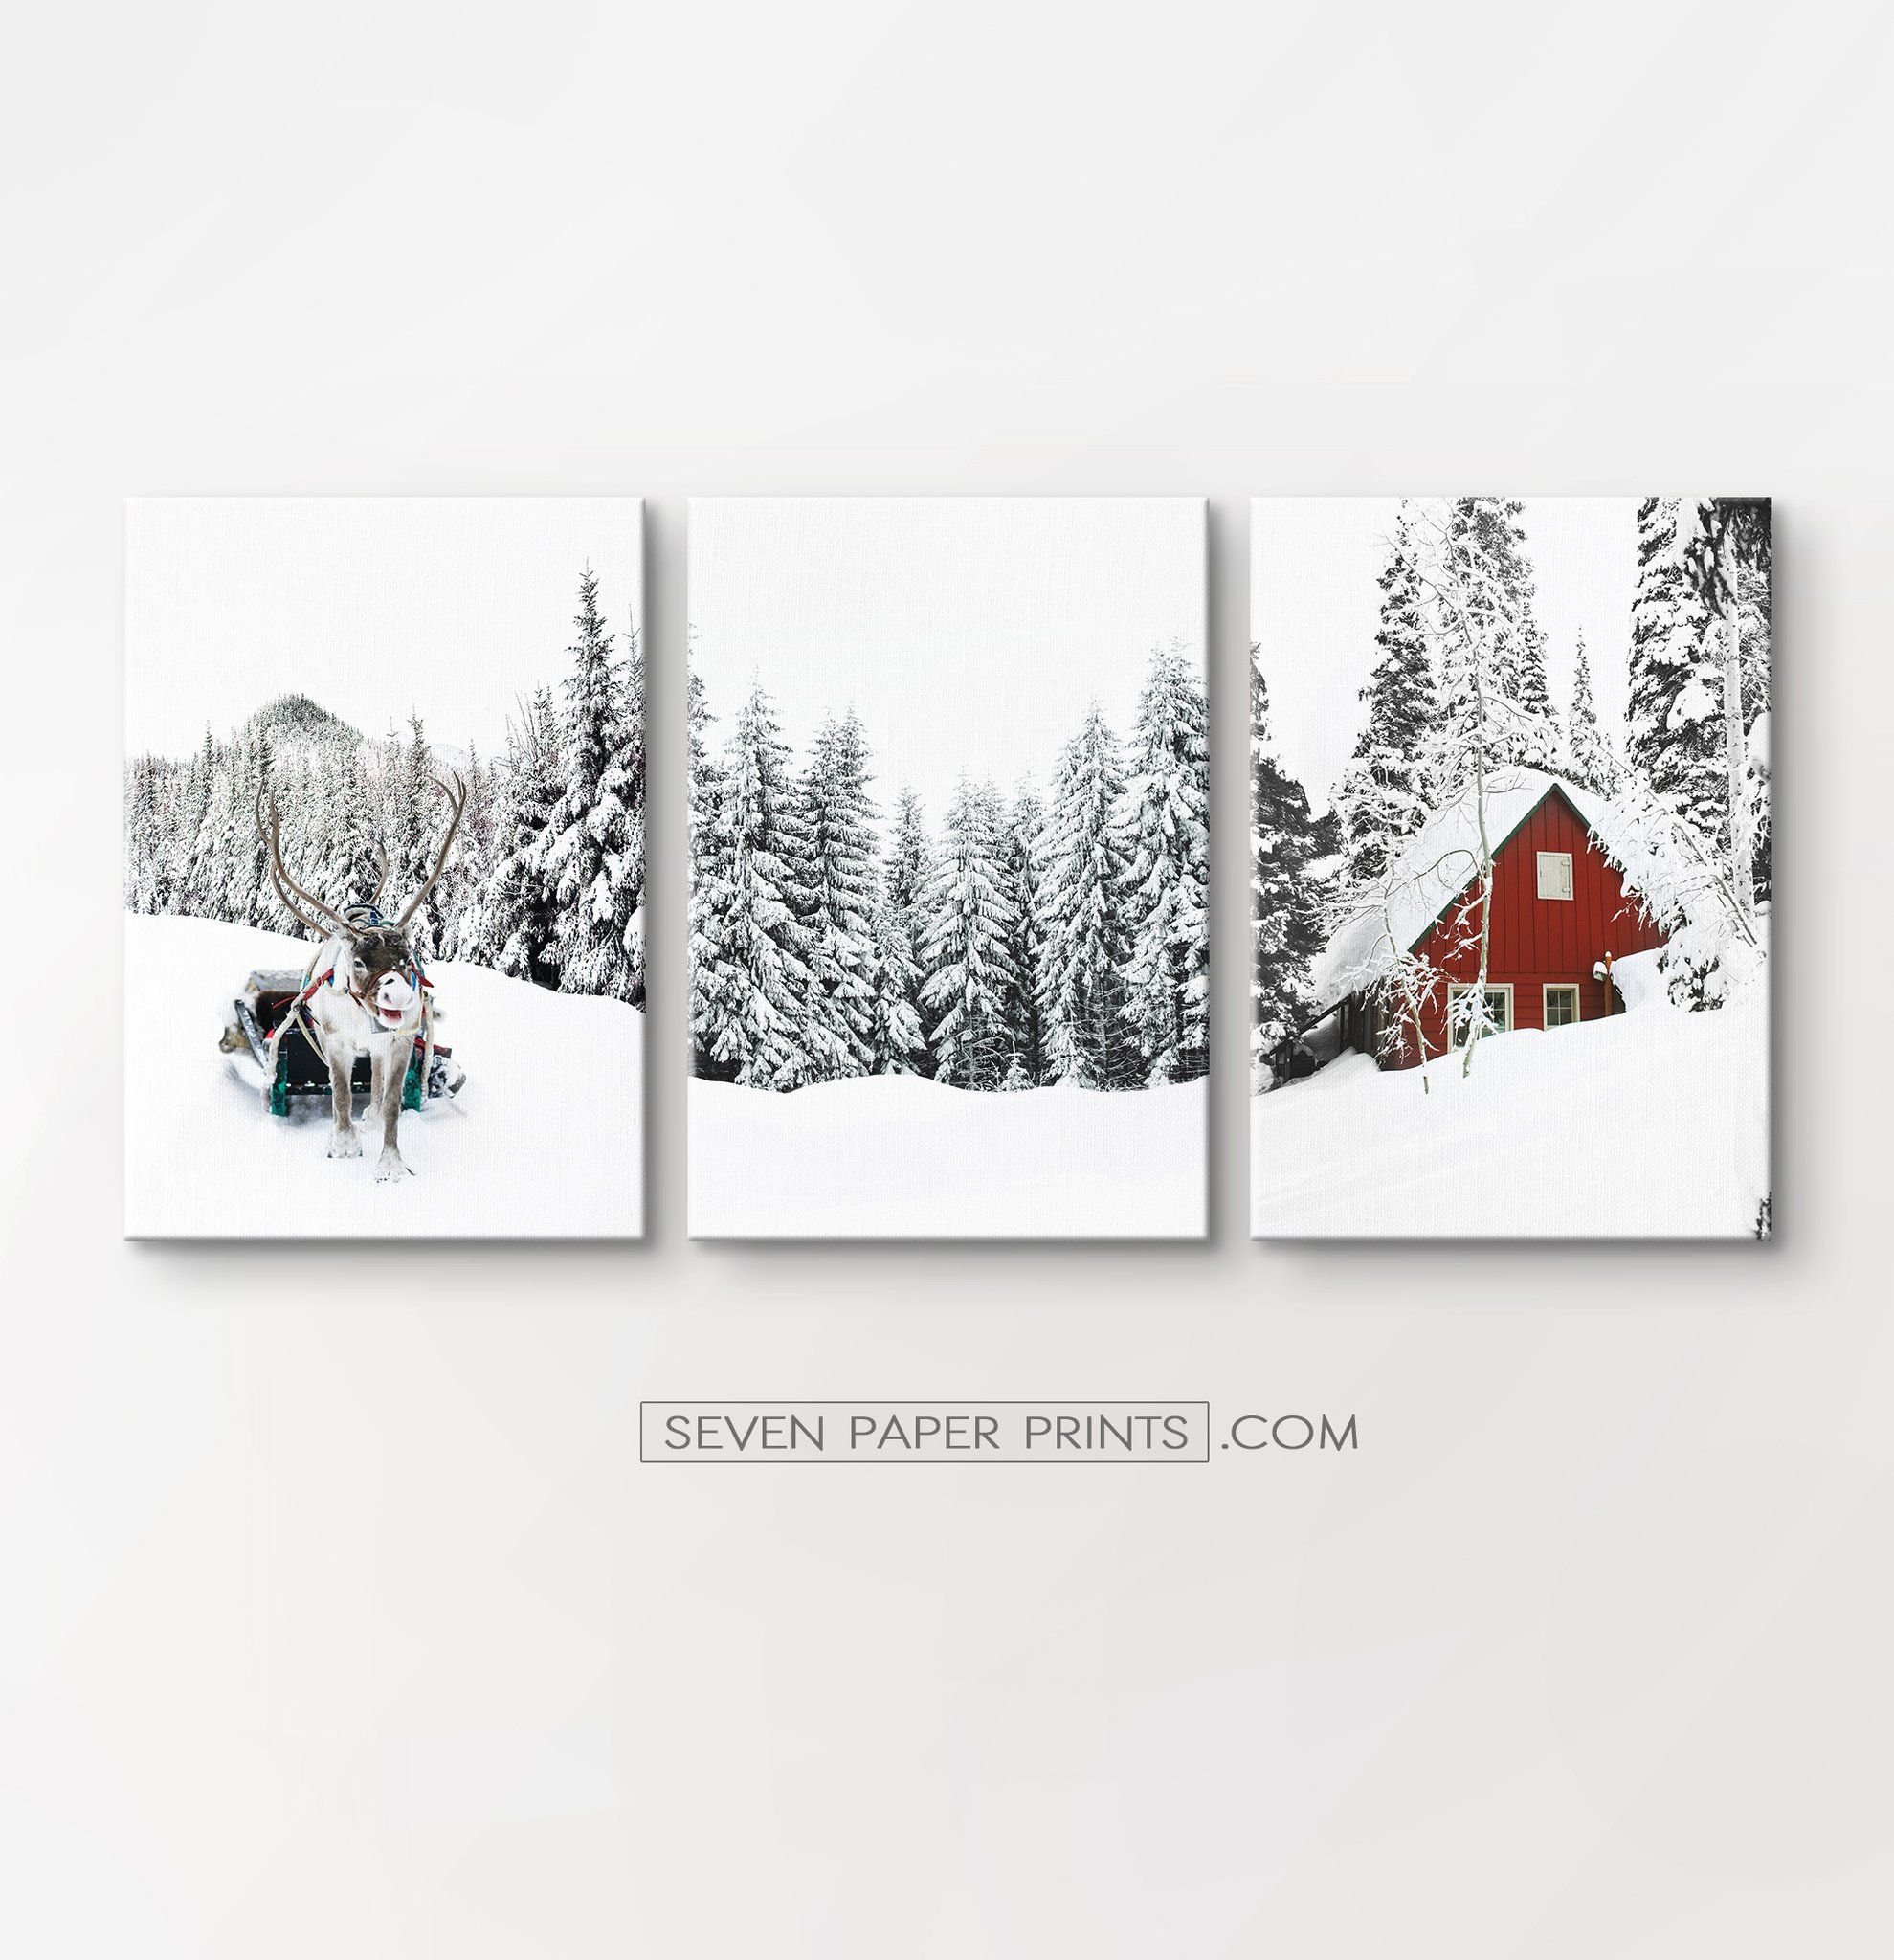 Christmas Decoration Gallery Set Of 3 Piece Wall Art Canvas Gallery Wall Gallery Wall Art Prints Christmas Gallery Wall